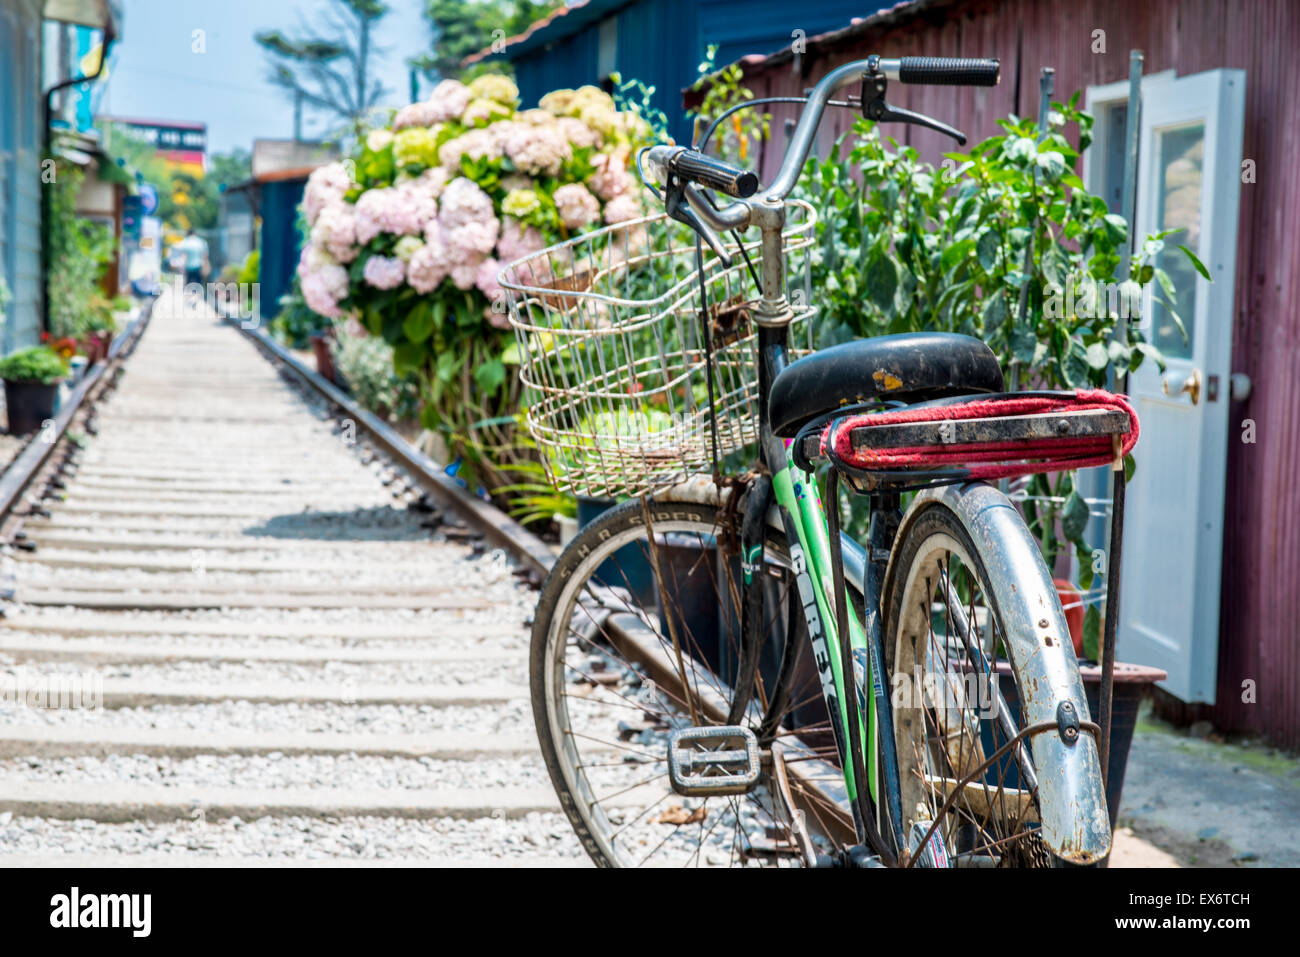 Something special in Gunsan - the bicycle and the railway - Stock Image